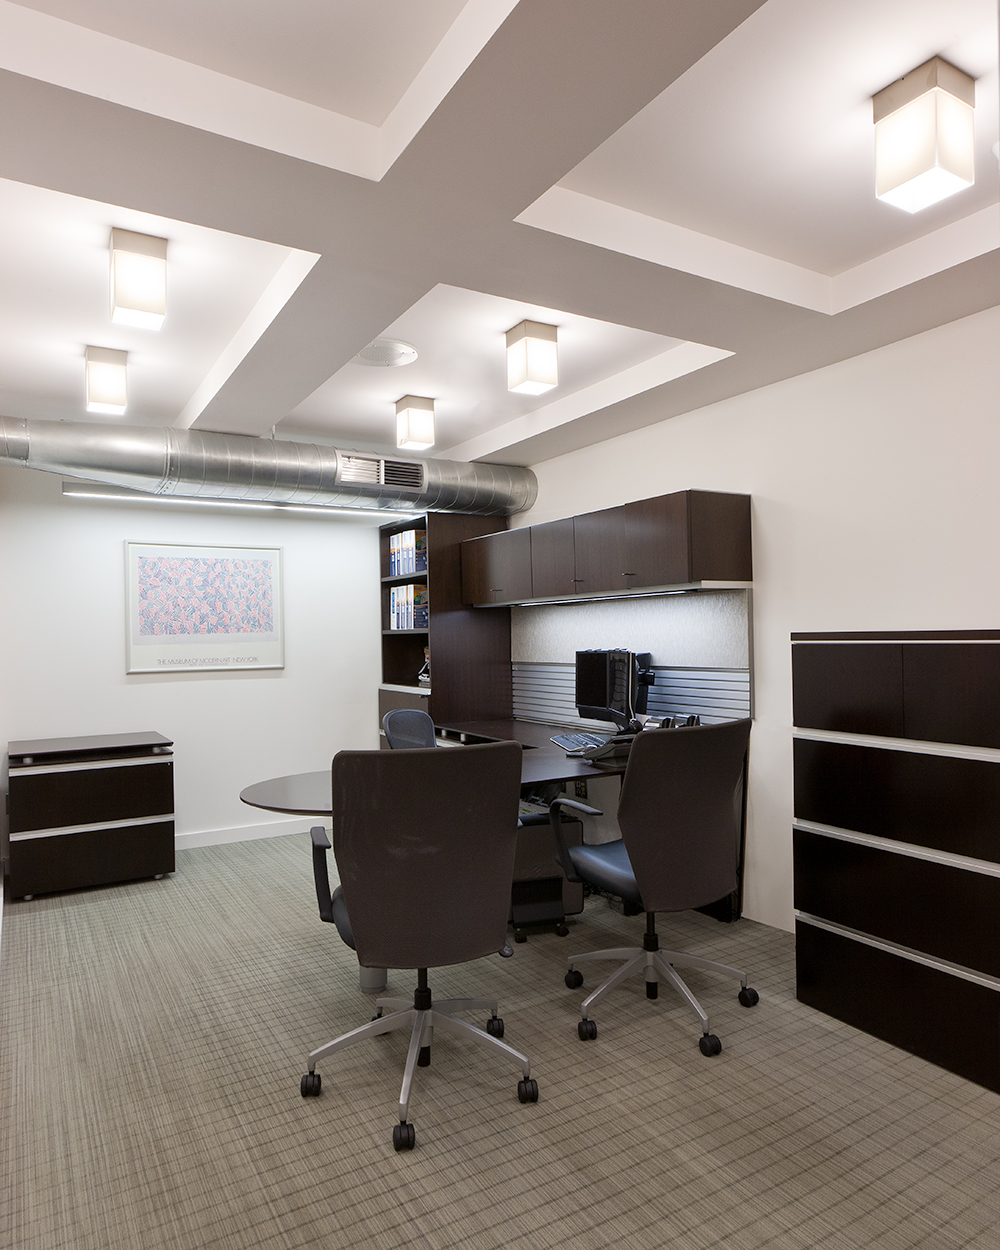 These custom light fixtures are clean, rectangular downlights for a sophisticated white and brown themed office.